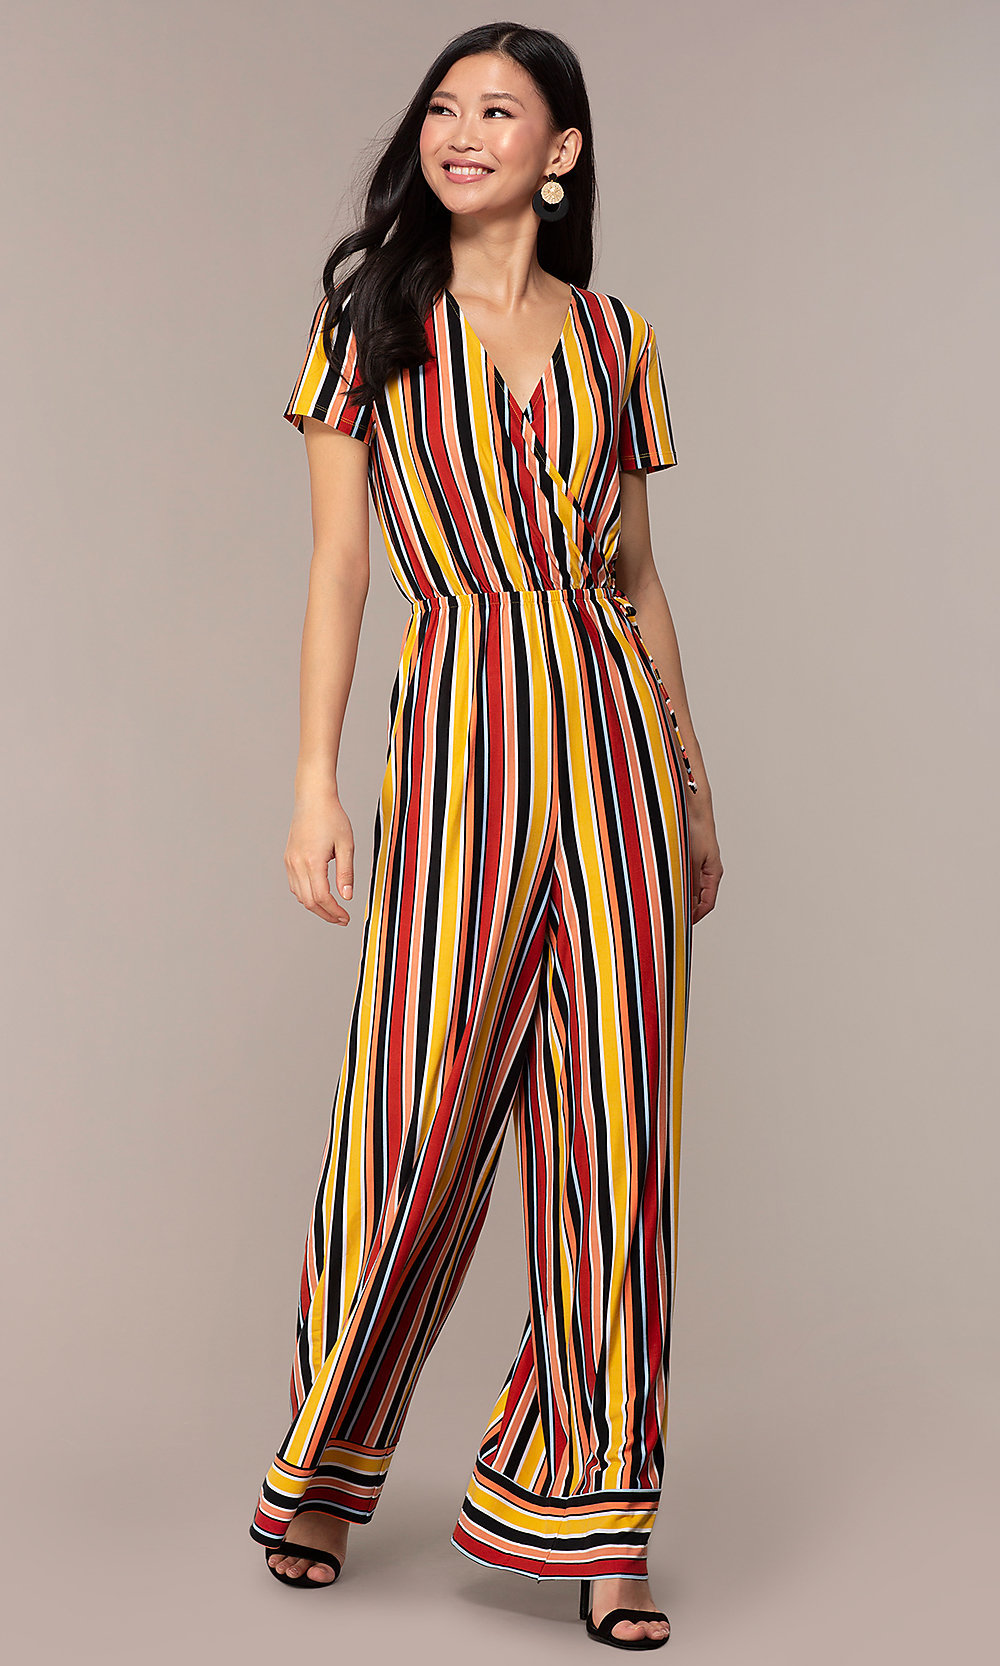 a057dec470f0 Multi-Colored Striped Jumpsuit for Parties